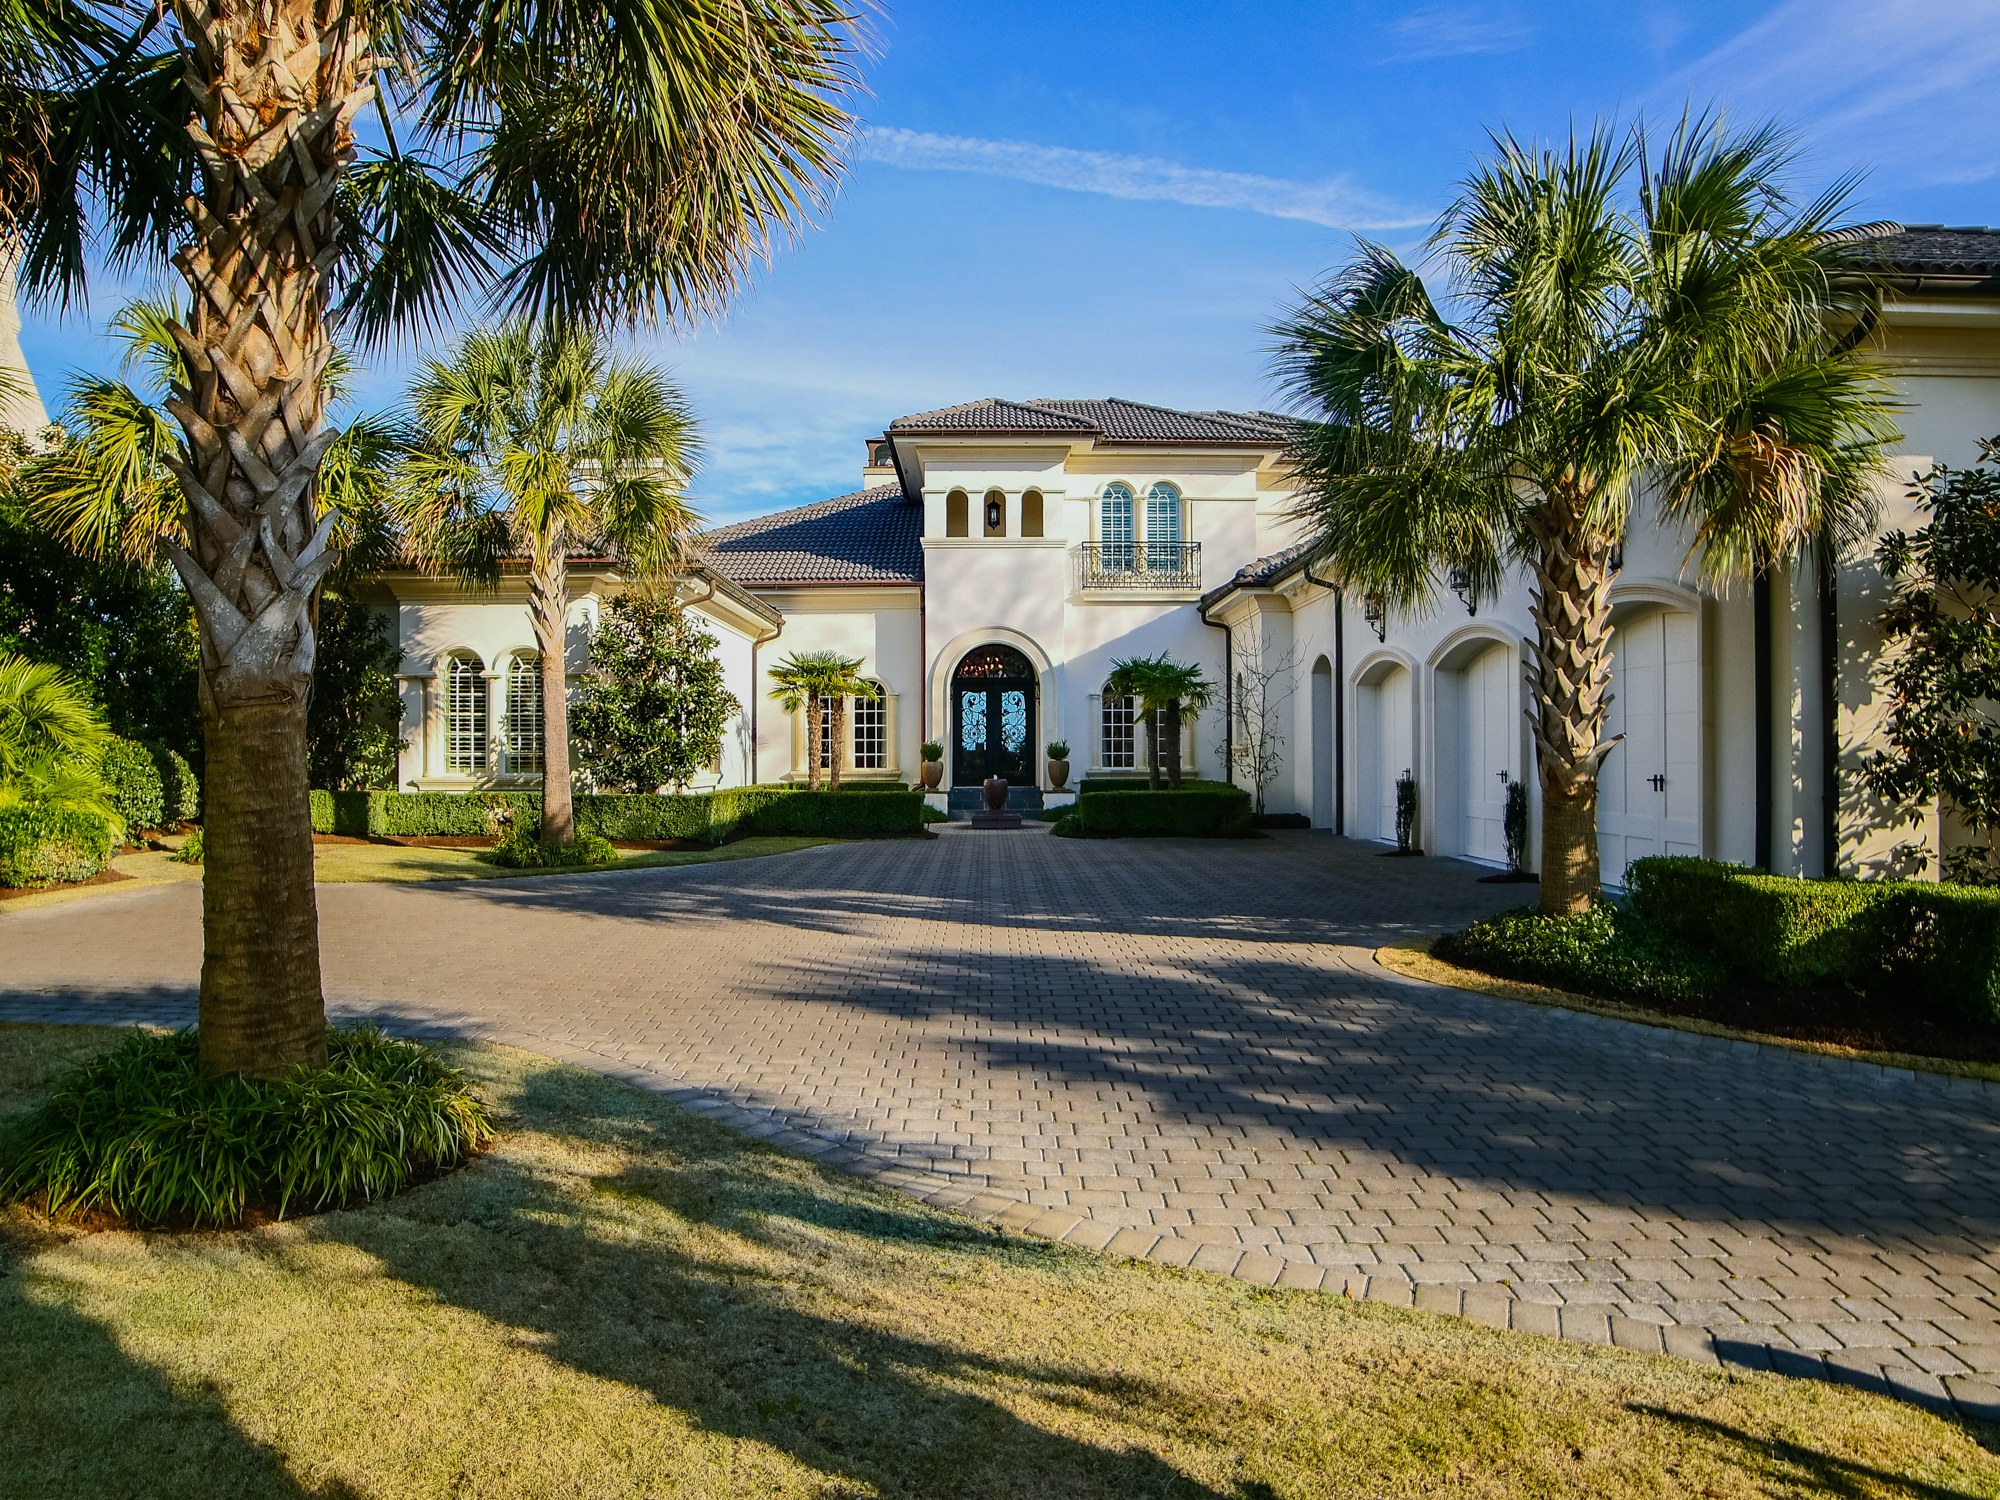 Single Family Home for Sale at Spectacular Mediterranean Revival 2336 Ocean Point Drive Wilmington, North Carolina, 28405 United States